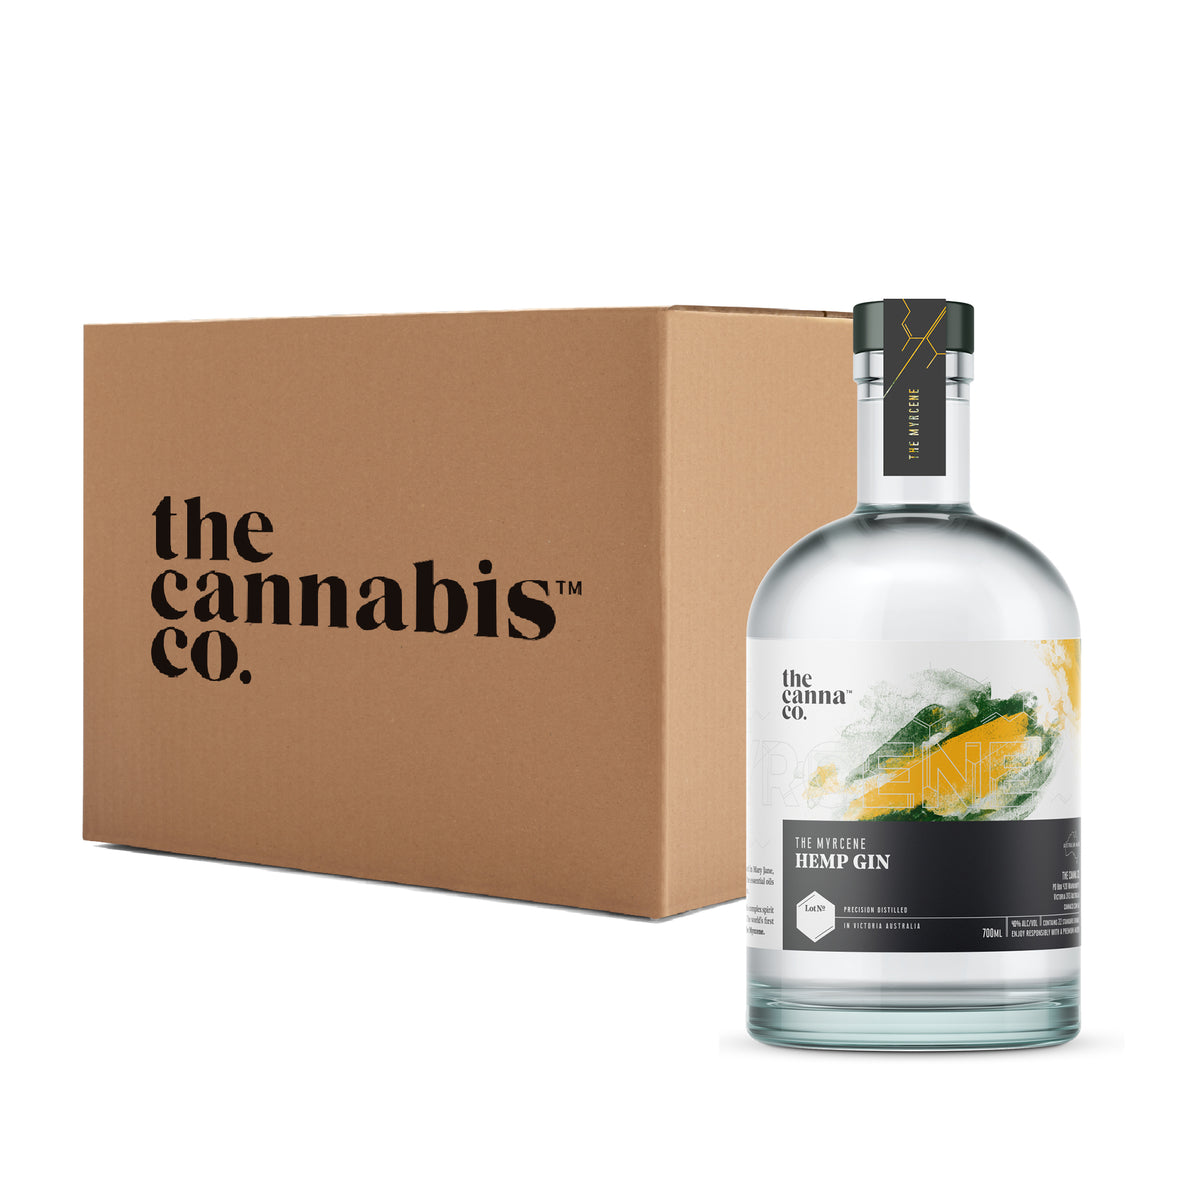 The Myrcene Hemp Gin – Case of 6 x 700ml bottles